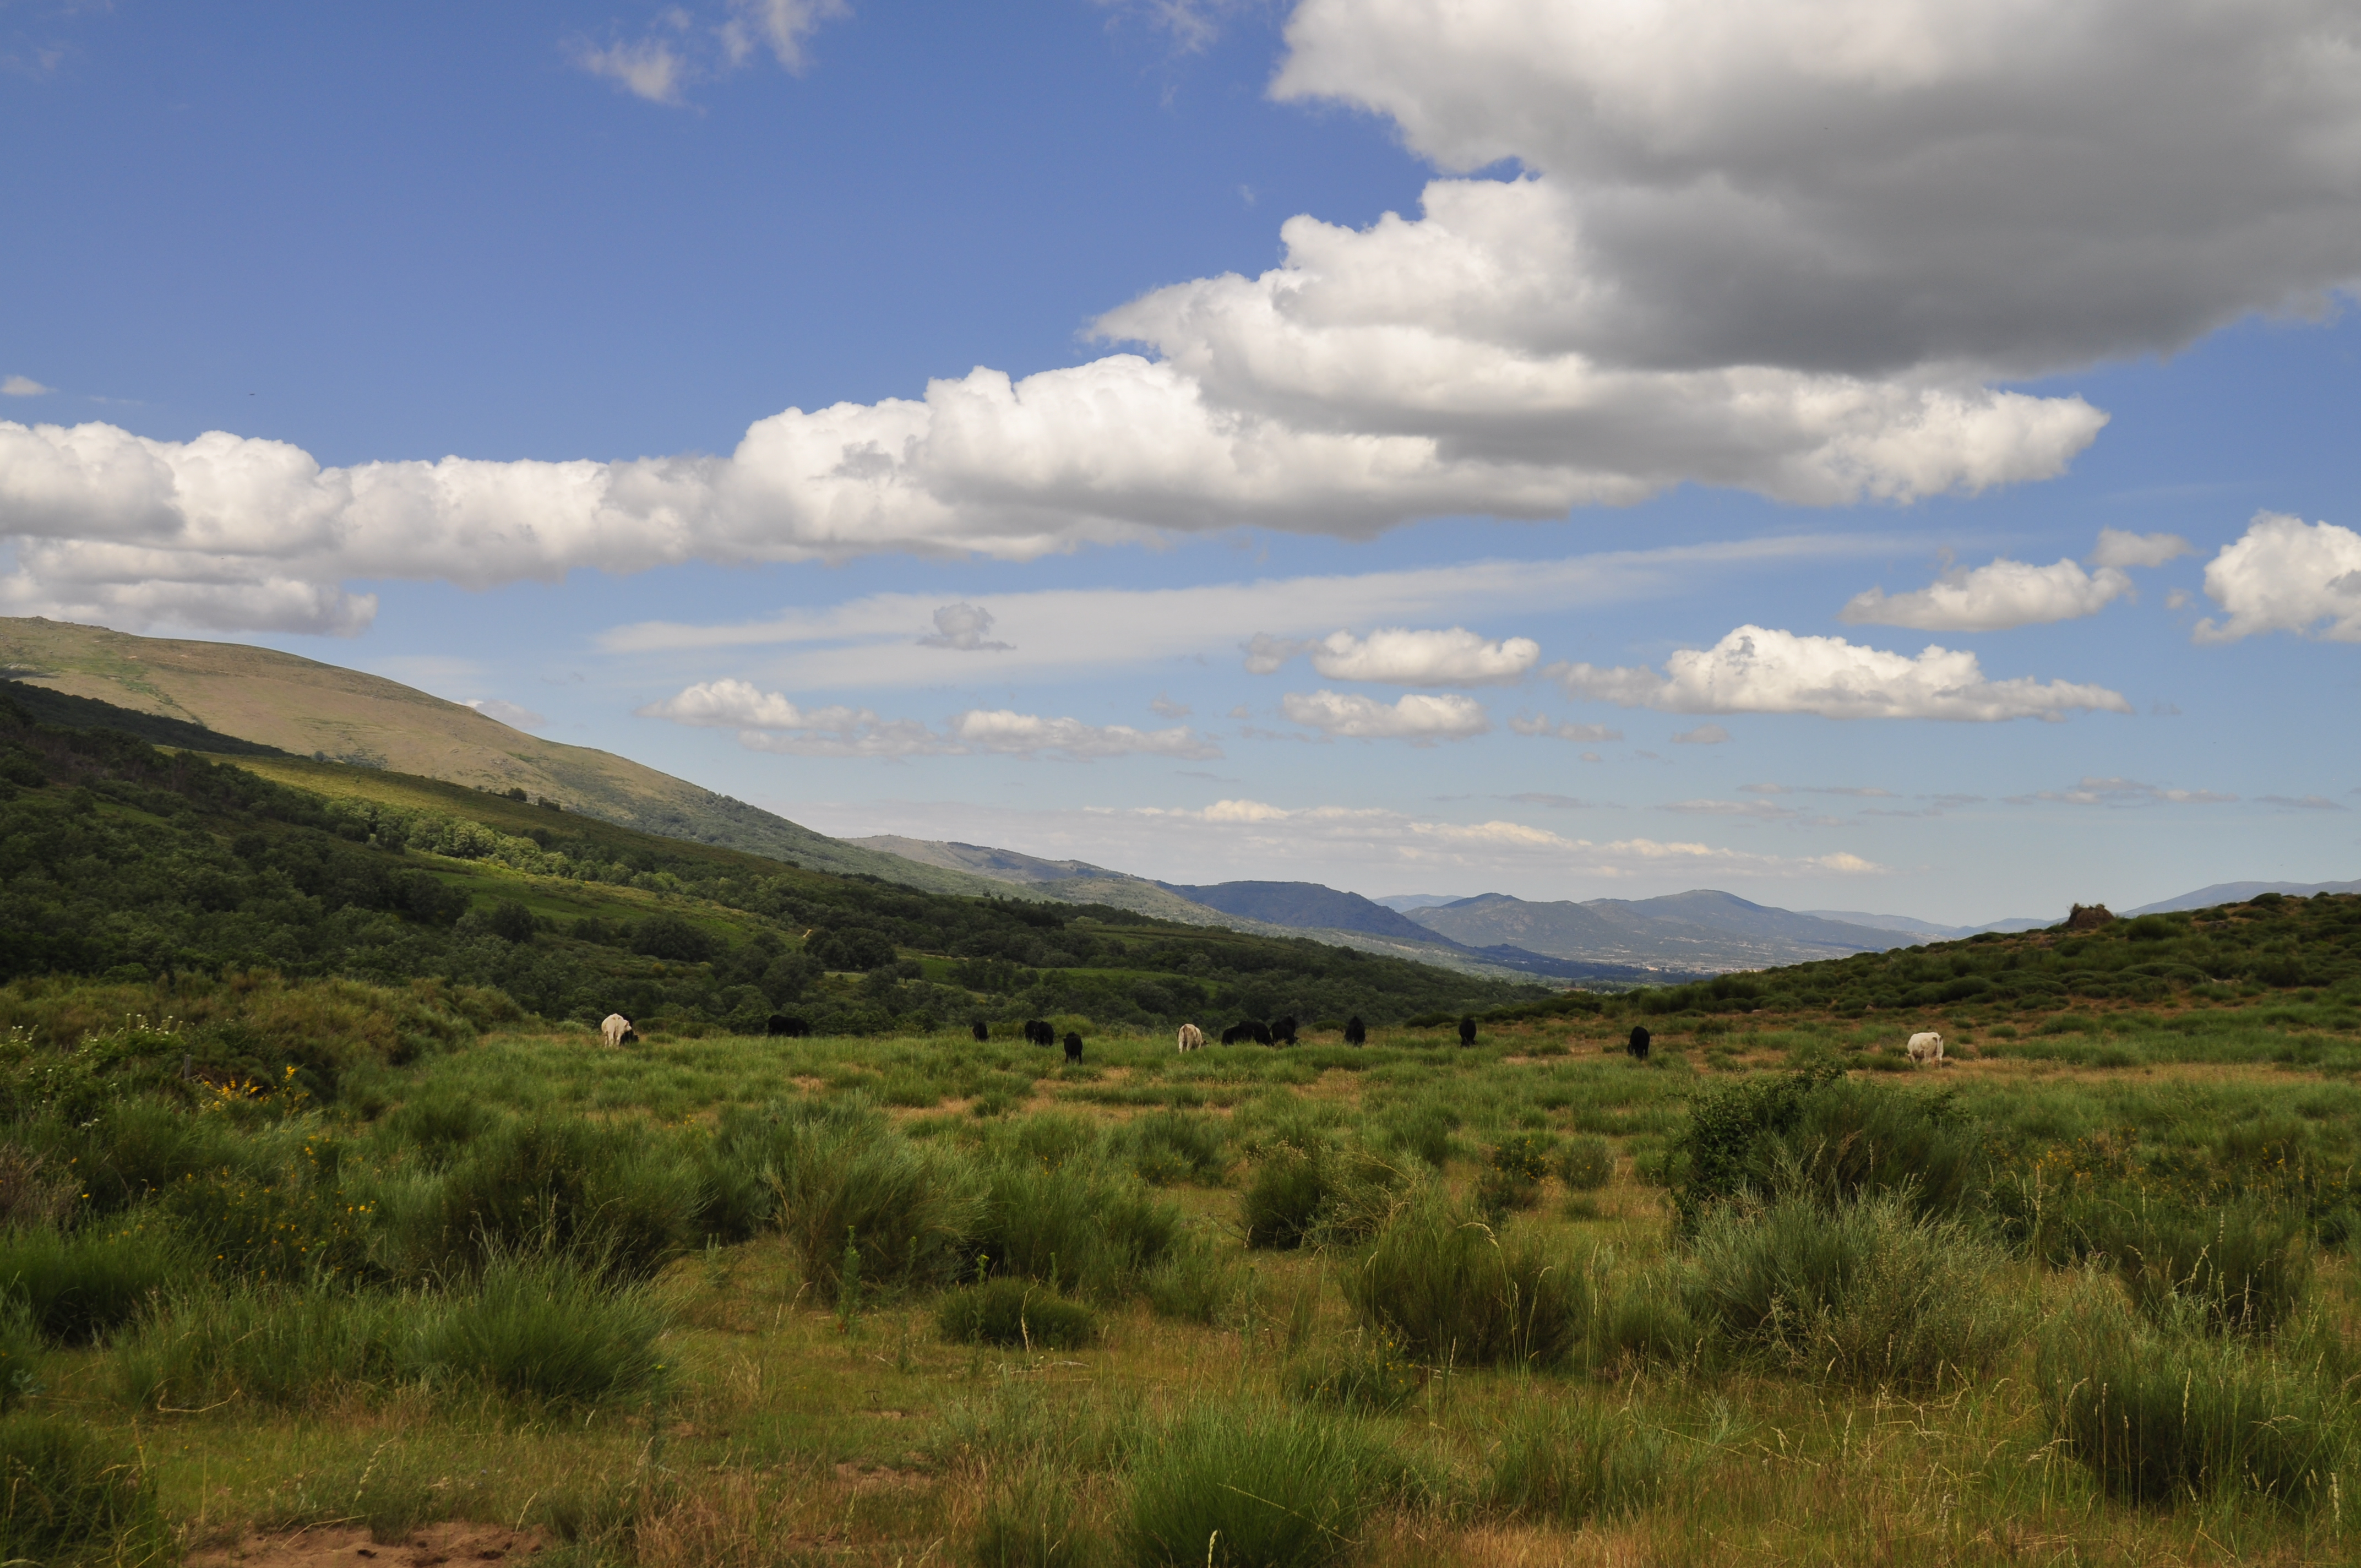 Grazing under the clouds, Campo, Cielo, Clouds, Espana, HQ Photo